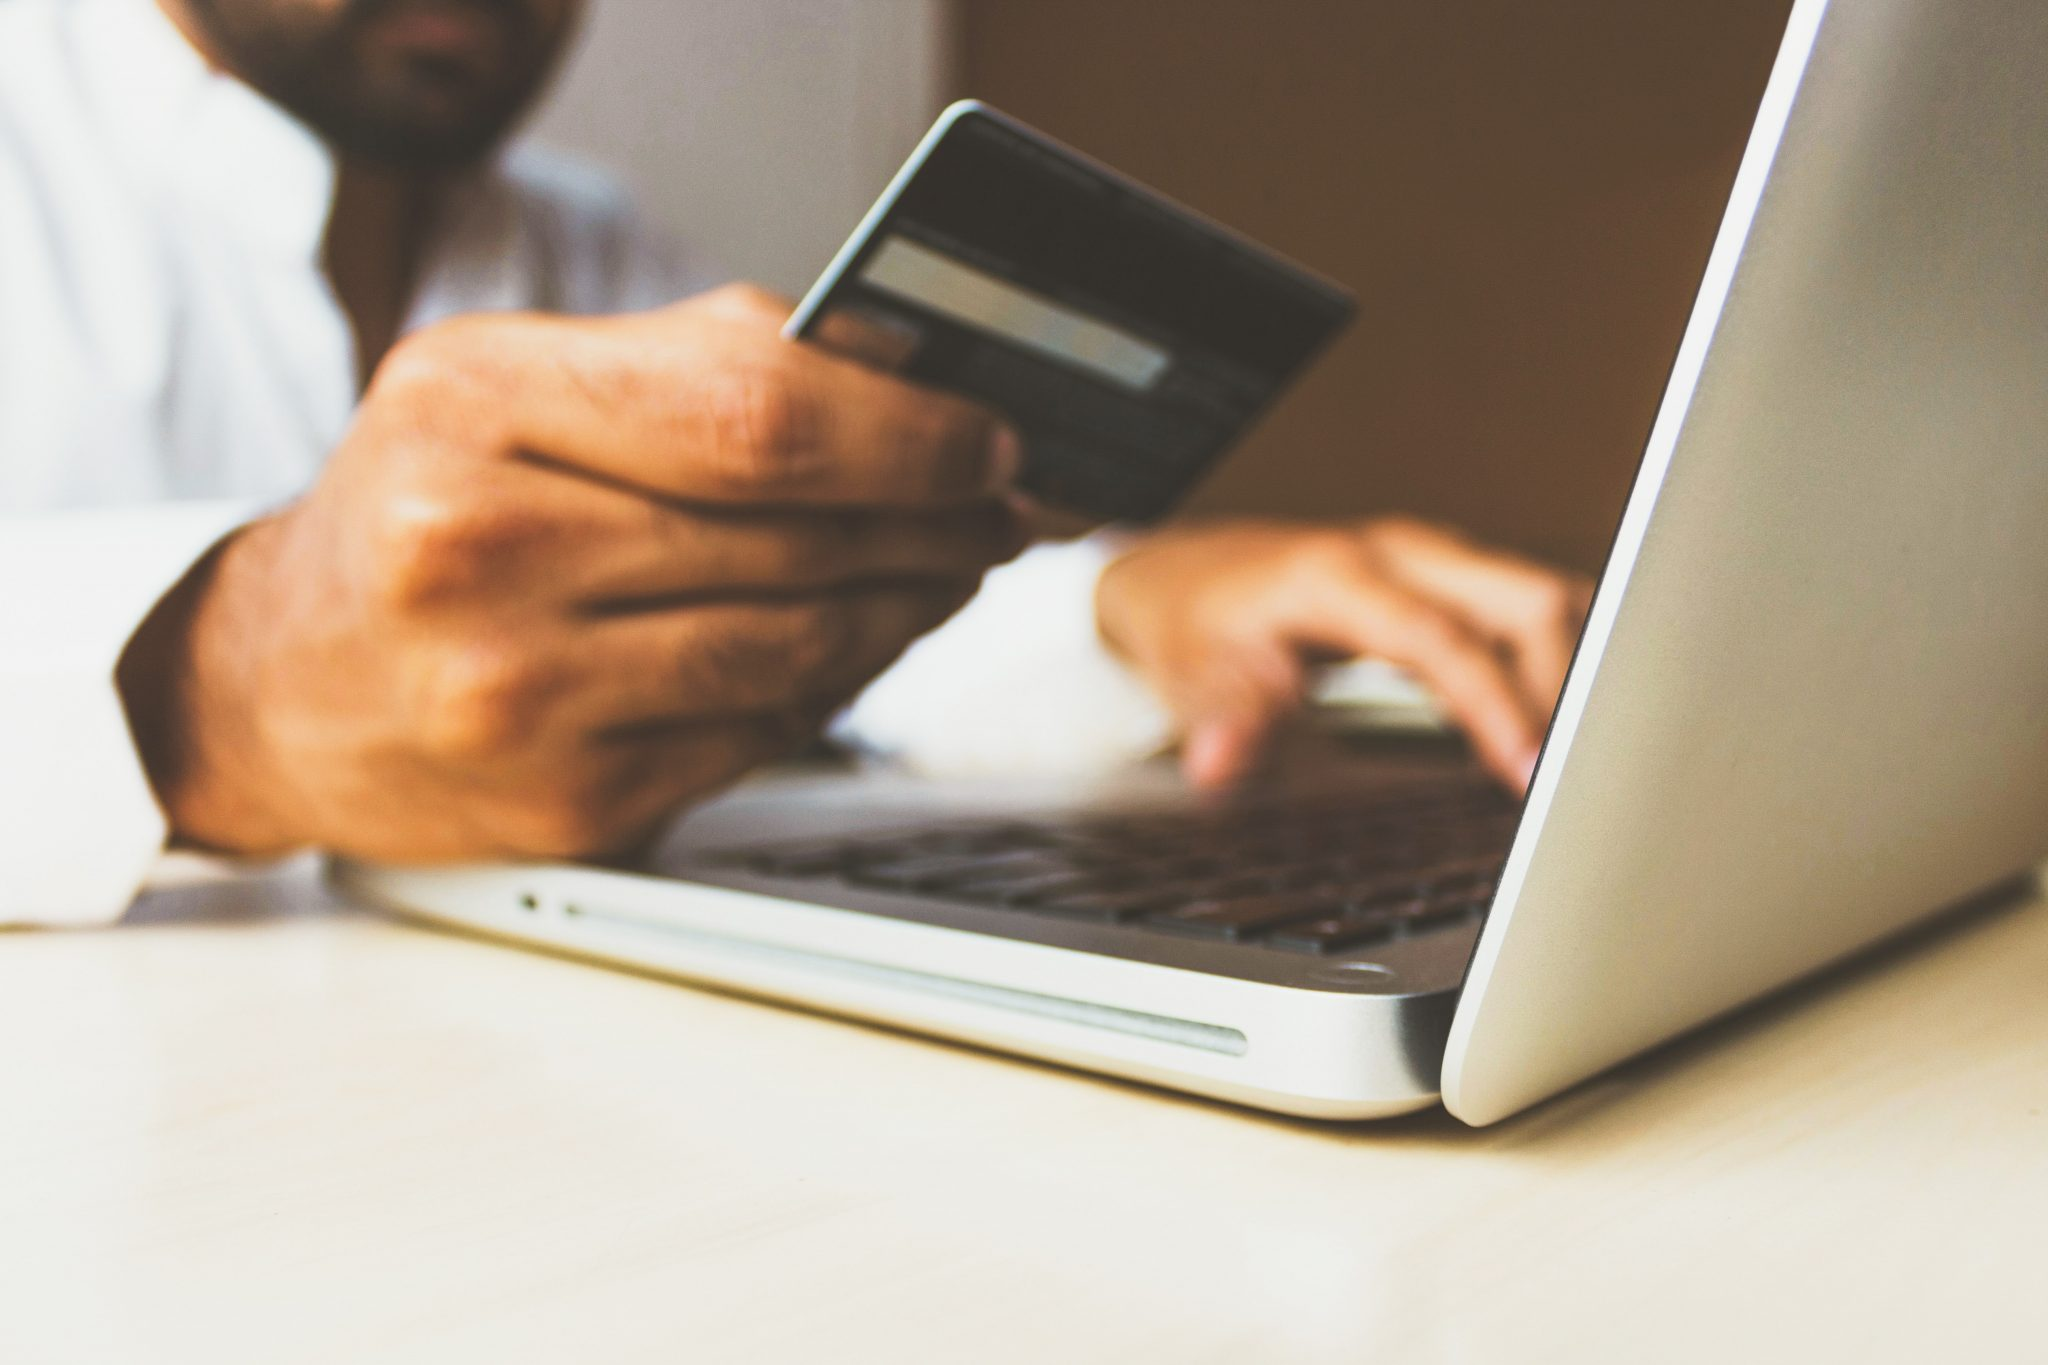 Keeping a simple checkout process is key for an online marketplace.